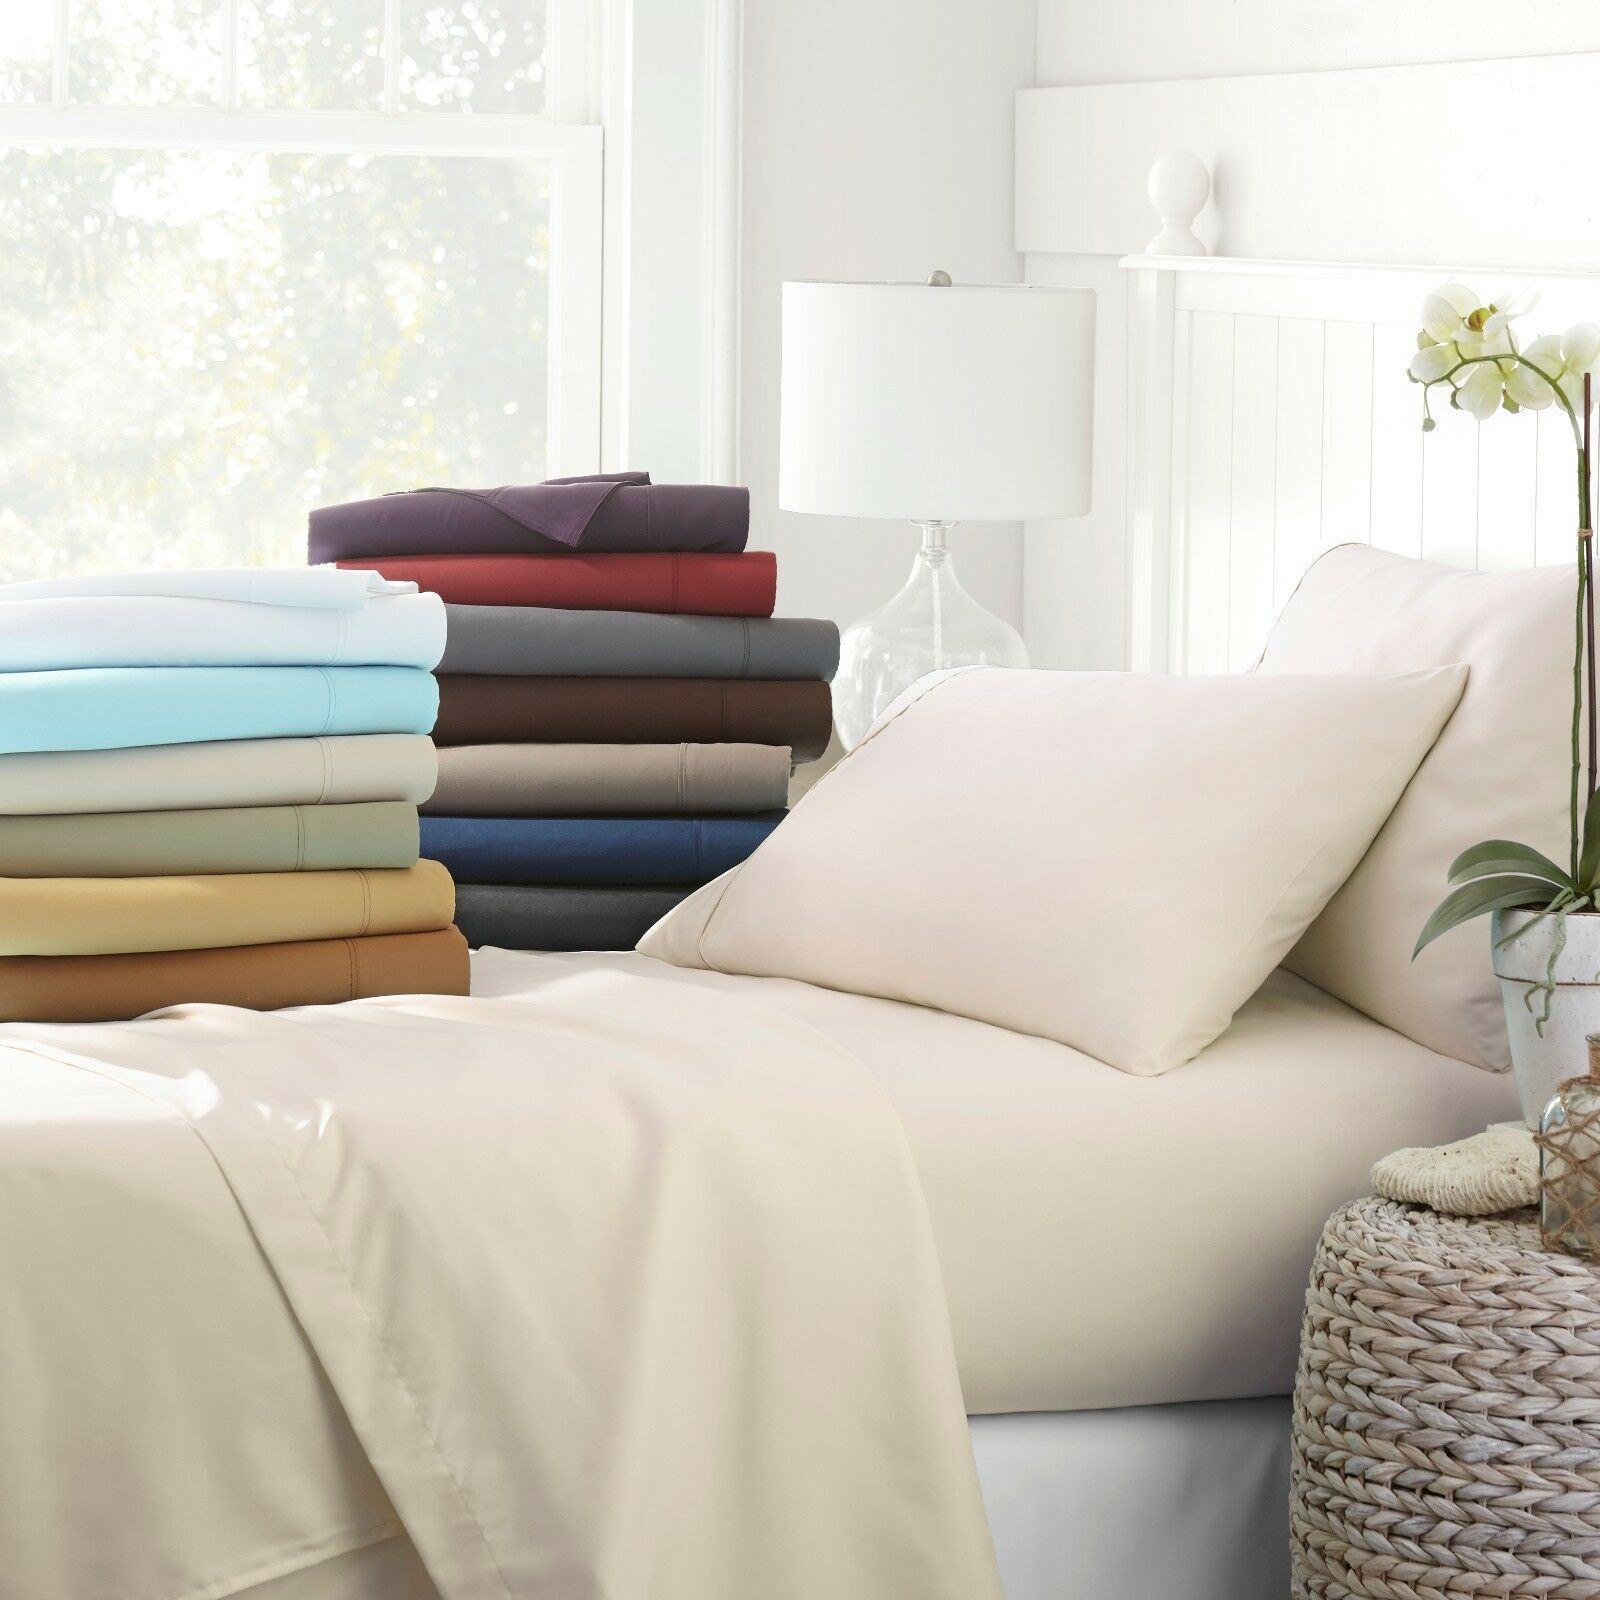 Egyptian Comfort 4-Piece Deep Pocket Bed Sheet Set - Hypoallergenic, Wrinkle-Free   List Price: $80   Today's Price: $14.49 — 82% off!    via eBay